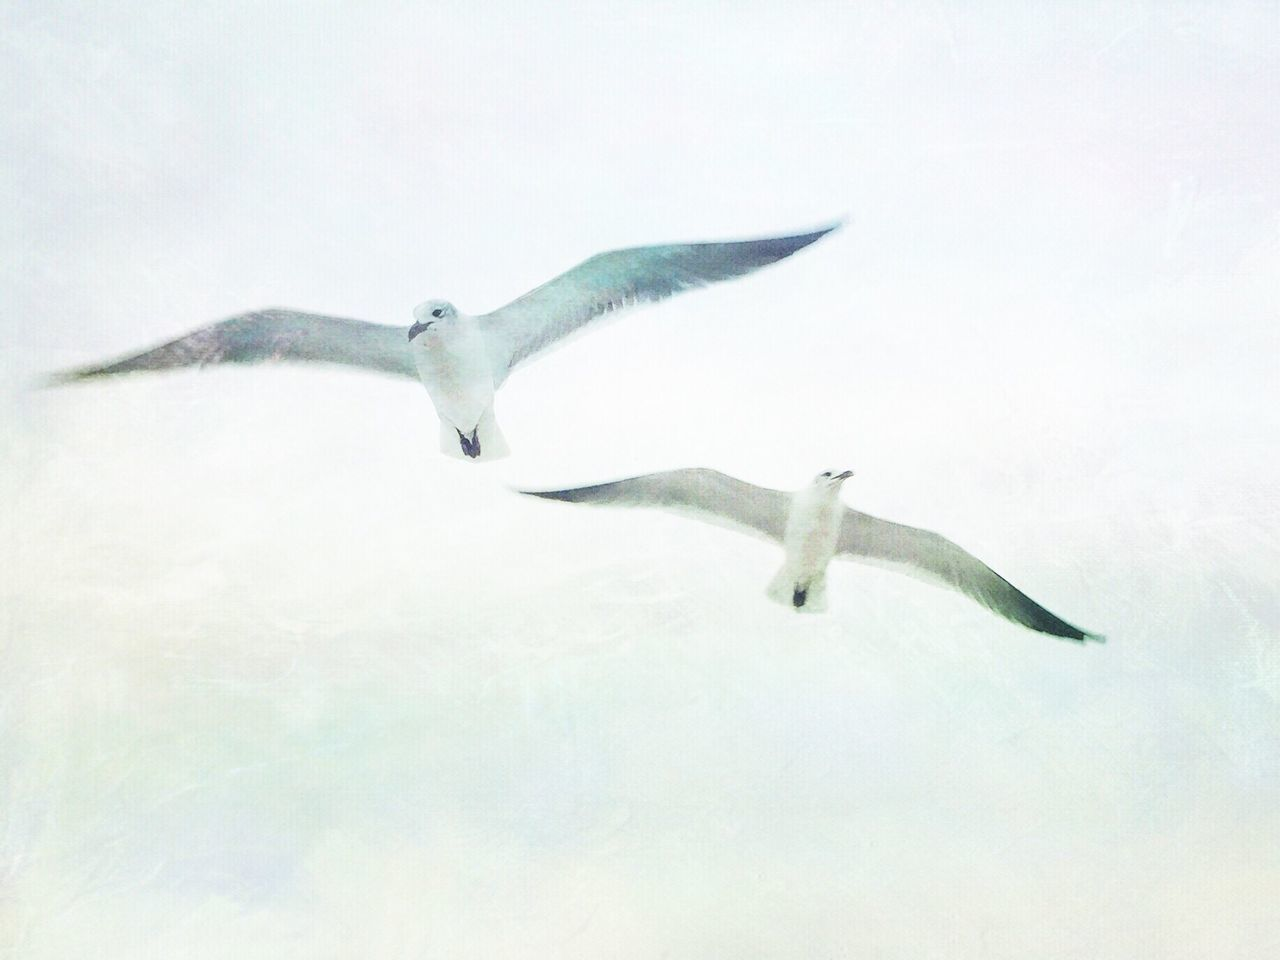 animals in the wild, animal themes, bird, flying, spread wings, nature, animal wildlife, one animal, no people, seagull, day, water, outdoors, swan, mammal